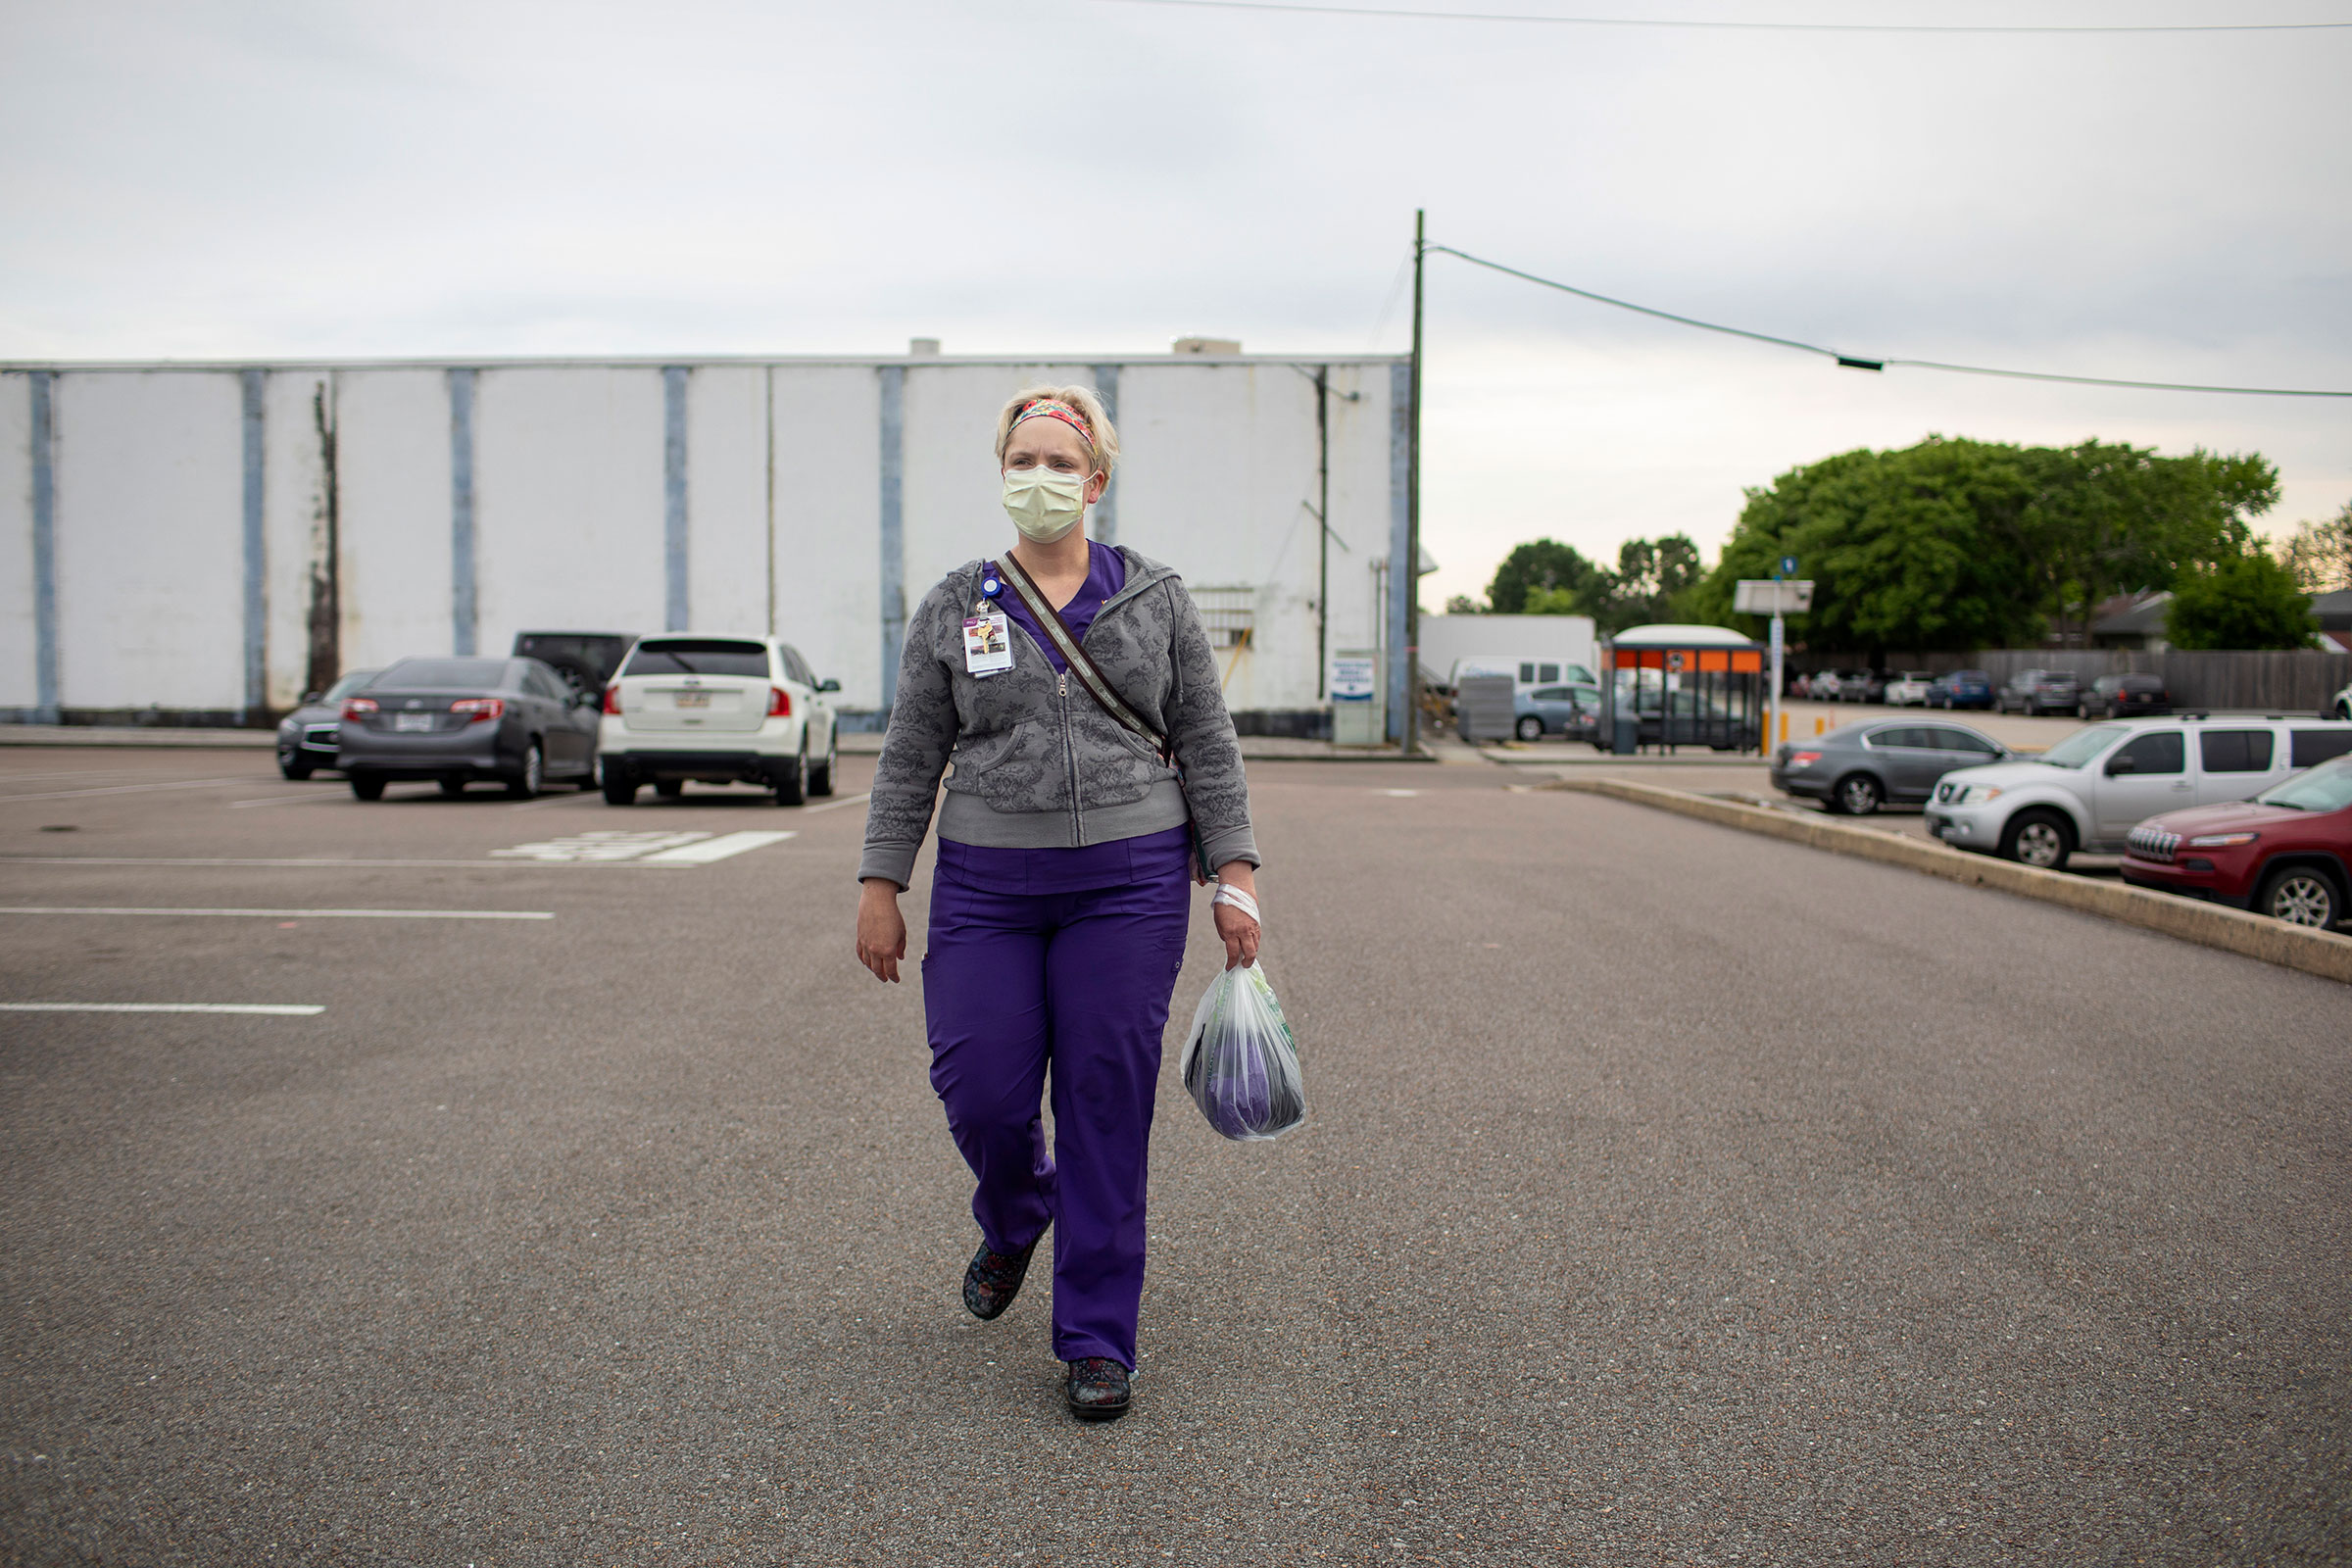 Laurie Halbrook walks to her car after a finishing a shift at Ochsner Medical Center in Jefferson Parish on April 2, 2020.